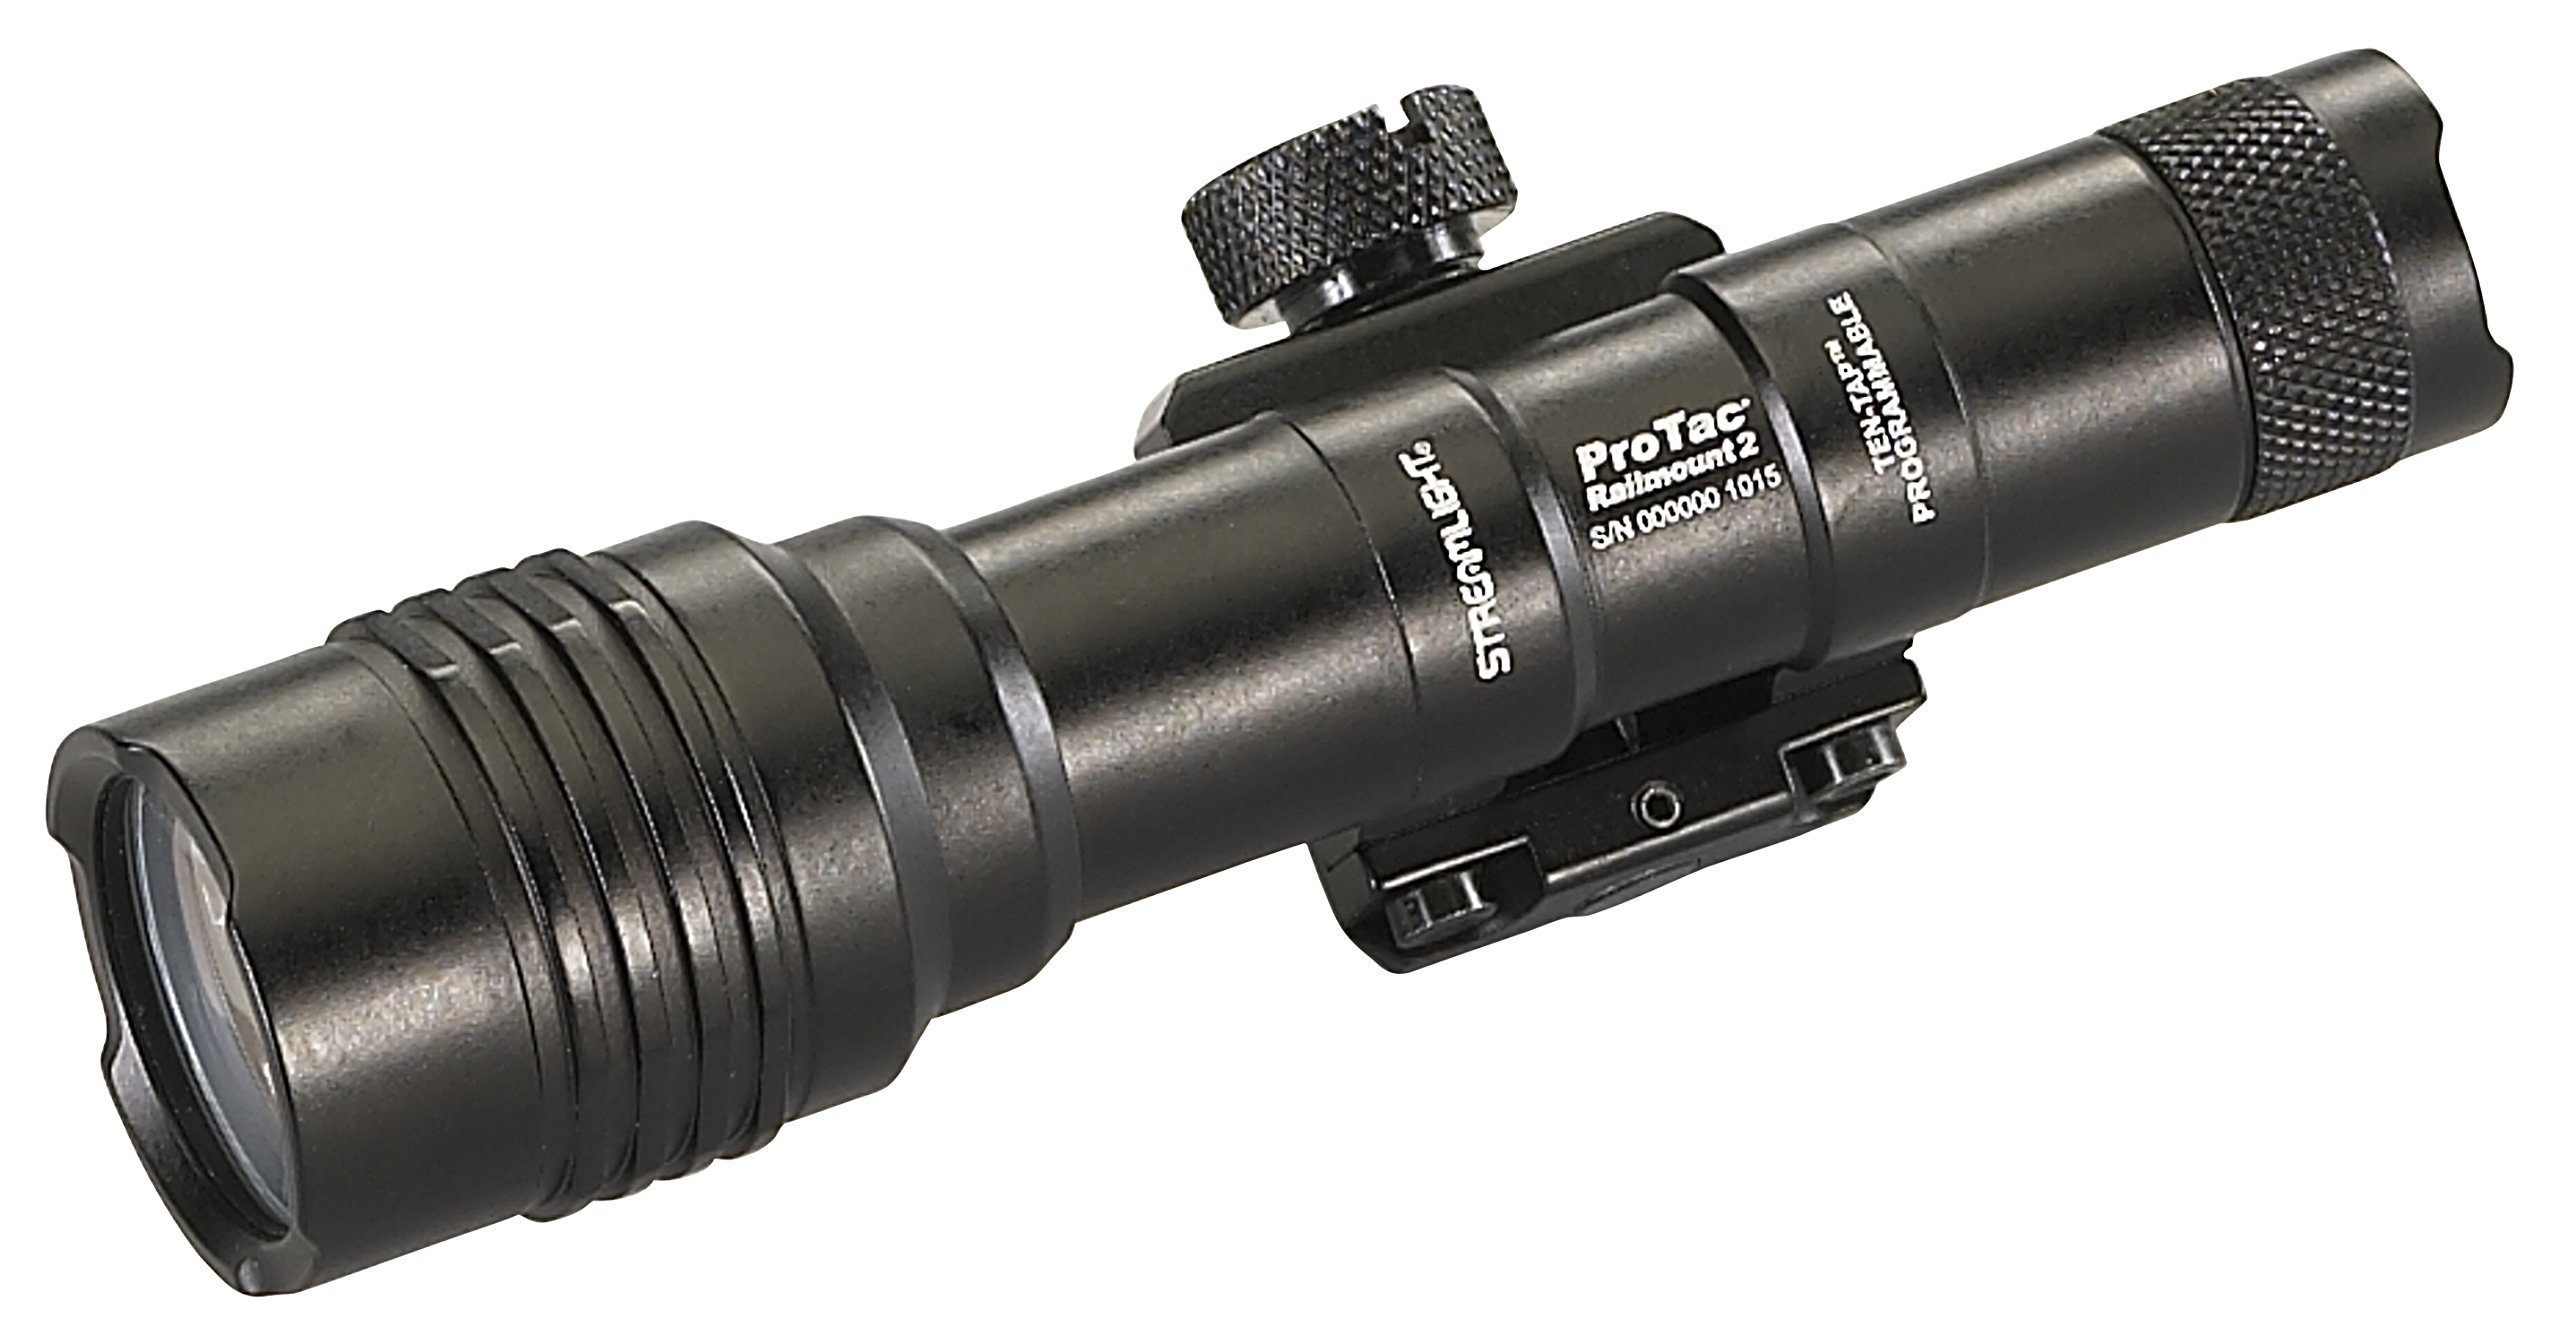 Streamlight 88059 ProTac Railmount 2L Dedicated Fixed-Mount Long Gun Light, Black by Streamlight